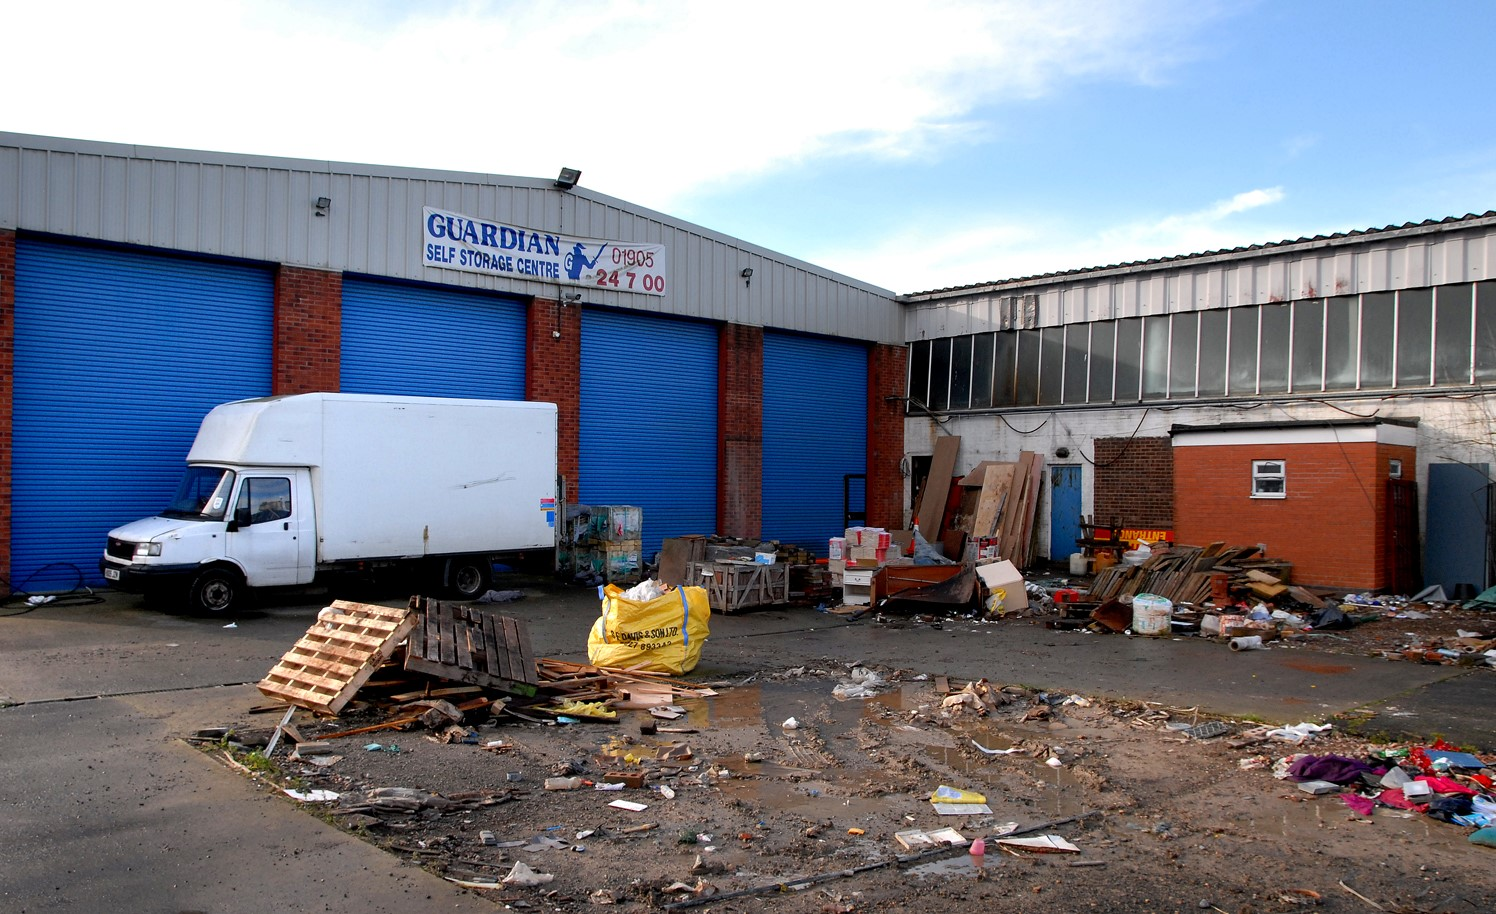 Guardian storage scandal - director banned for five years but NO criminal charges brought